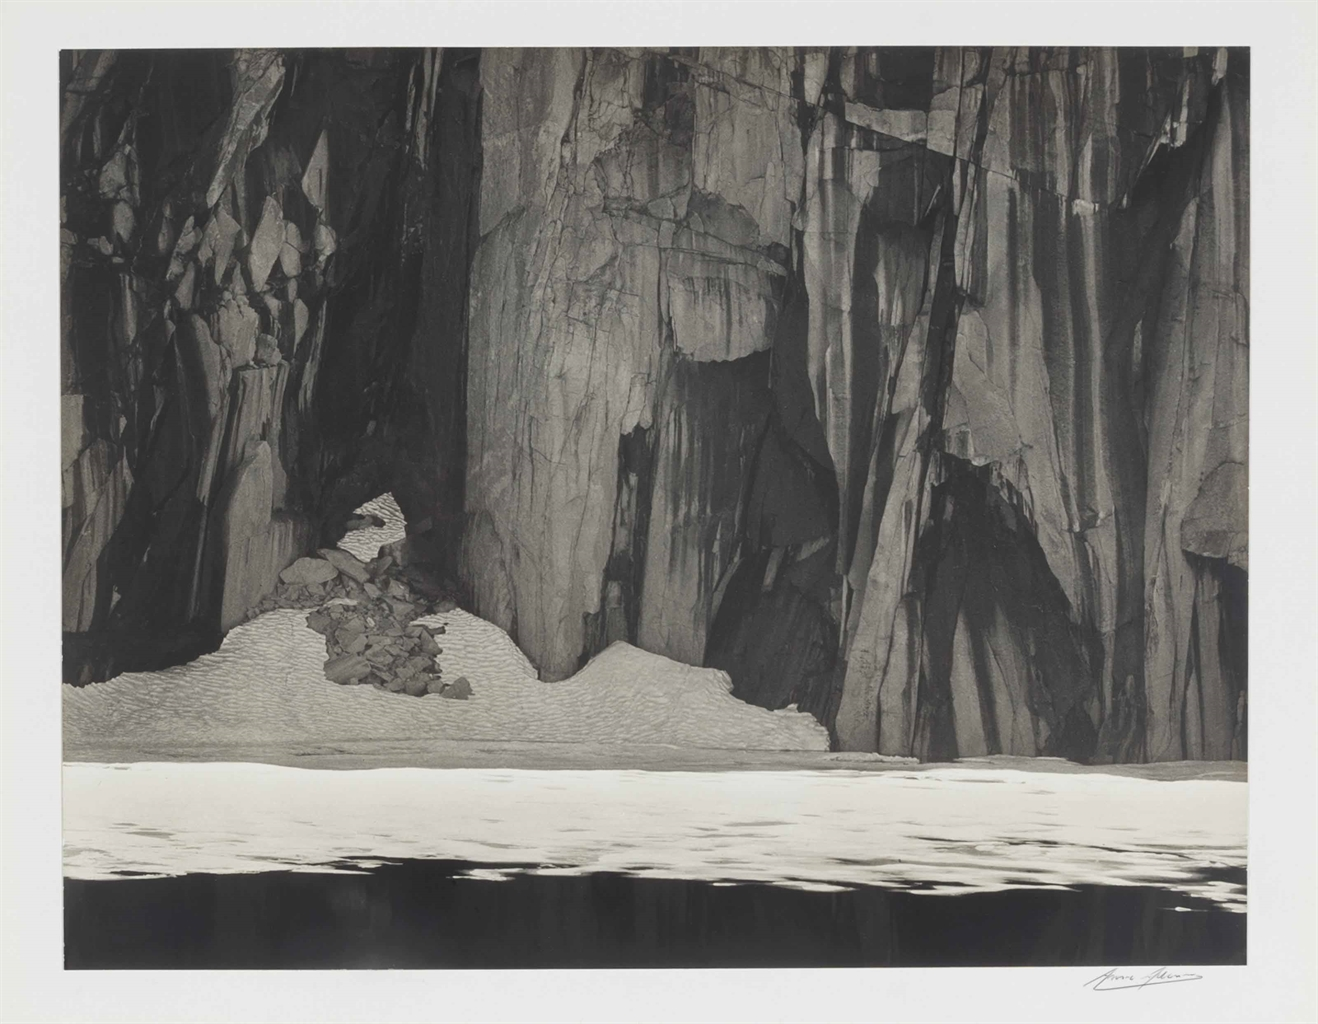 Ansel Adams-Frozen Lake and Cliffs, Kaweah Gap, Sierra Nevada, California-1932